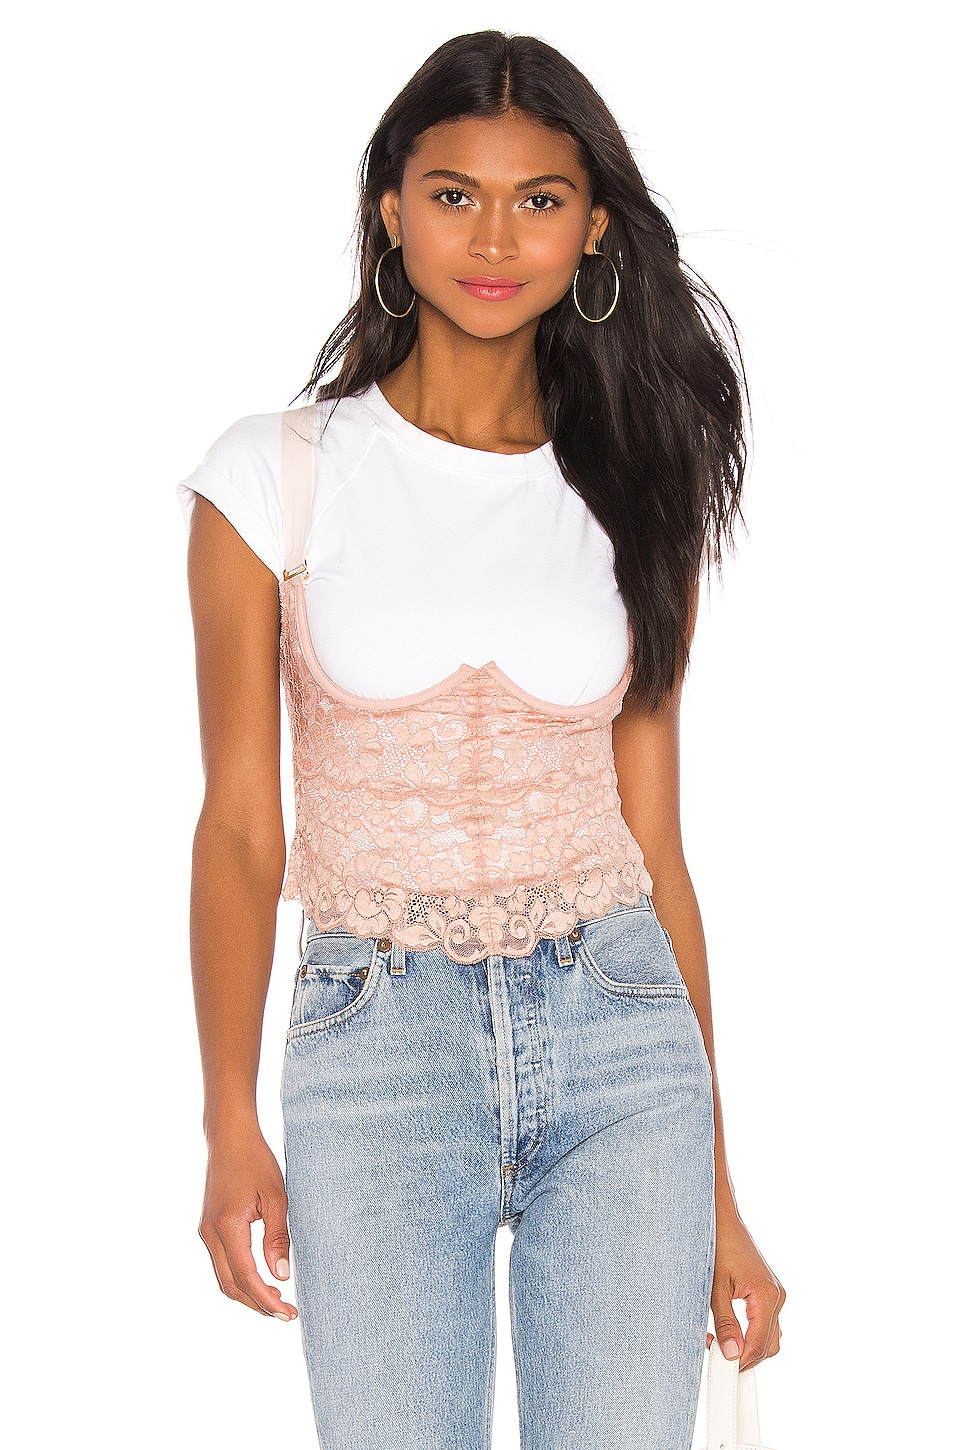 HAH Busta Move Bustier en Copper Rose